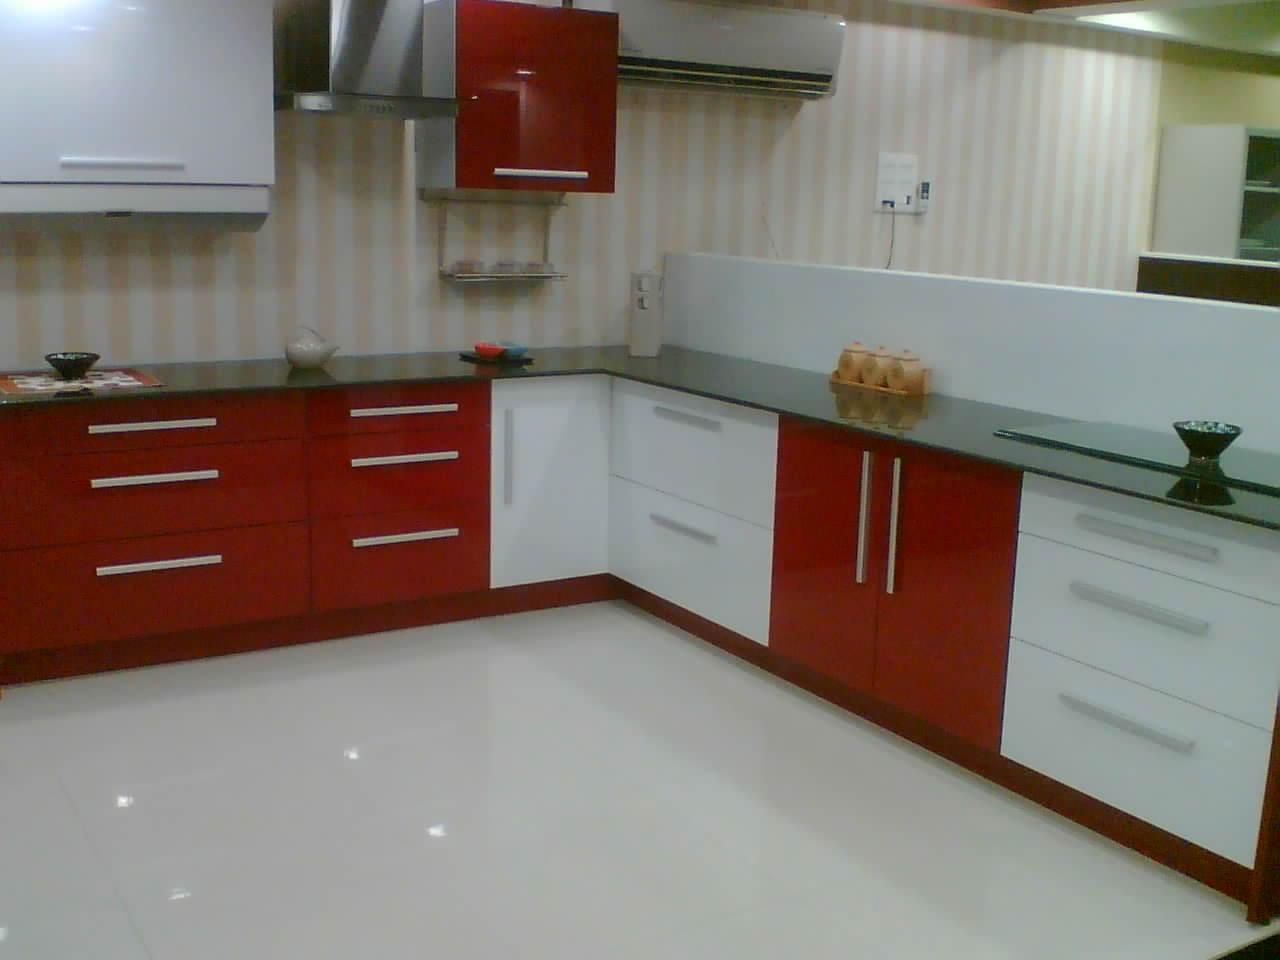 Captivating Modular Kitchen Design Concepts 2013 Extraordinary